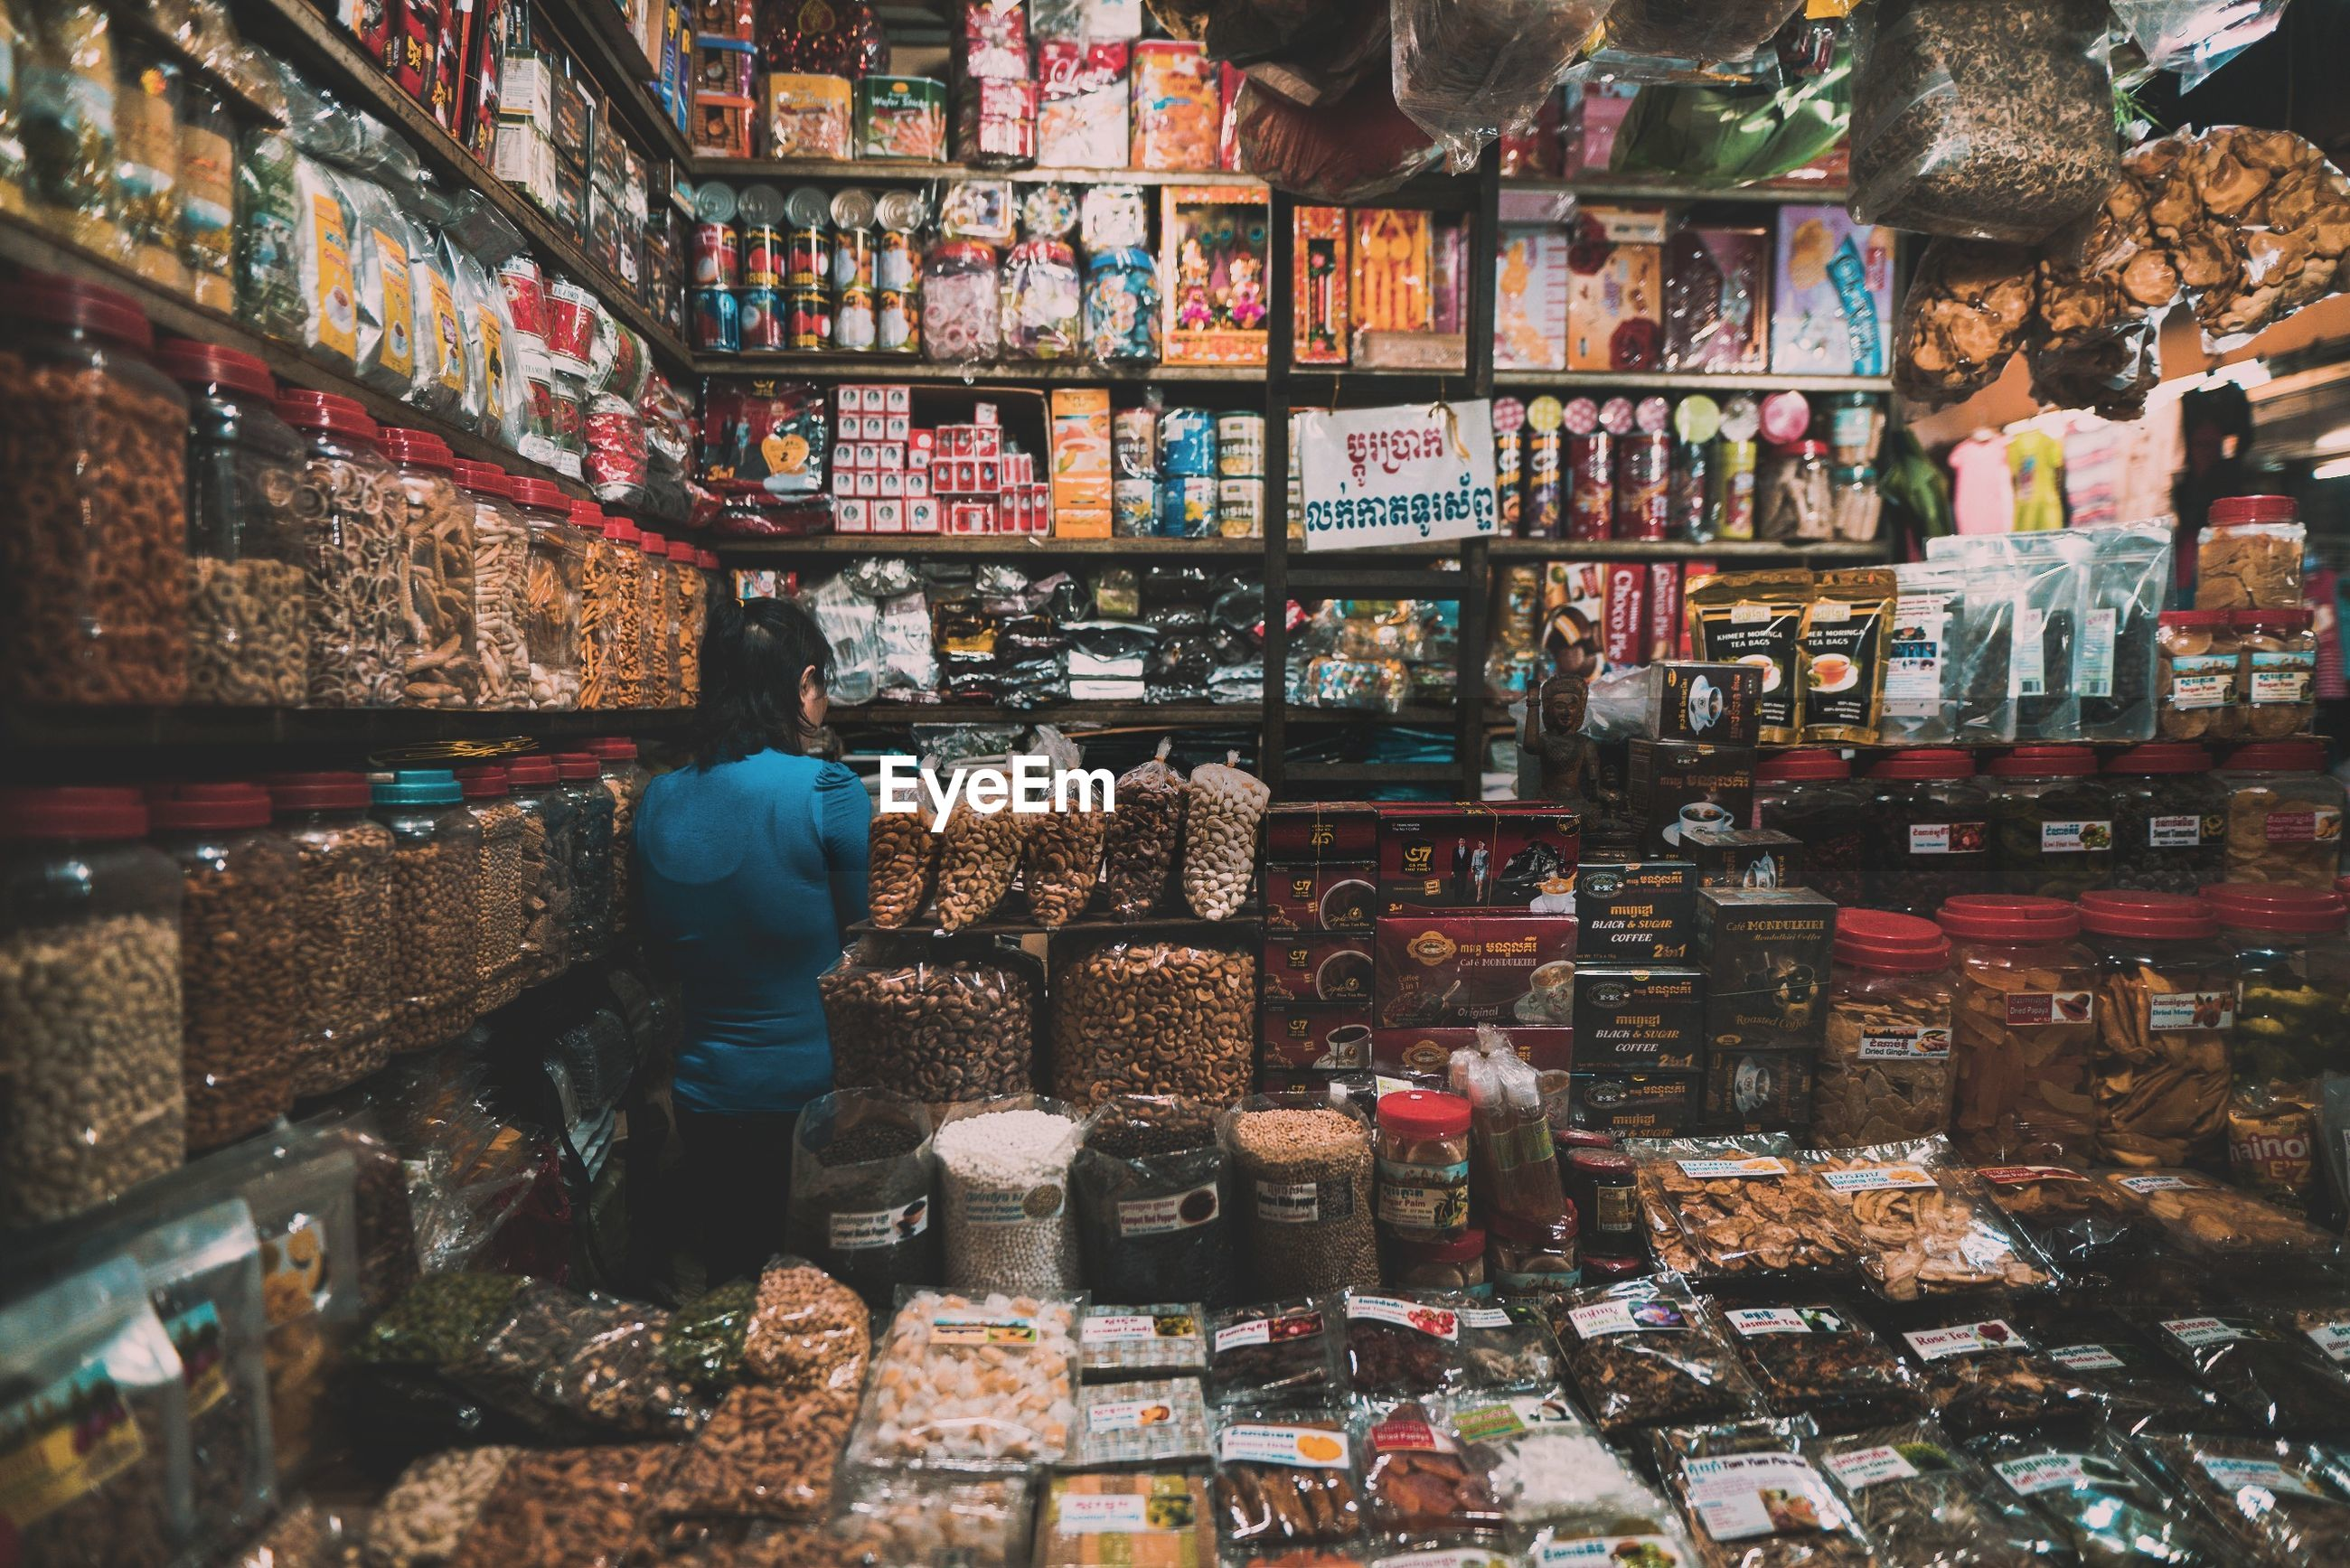 VIEW OF A MARKET STALL